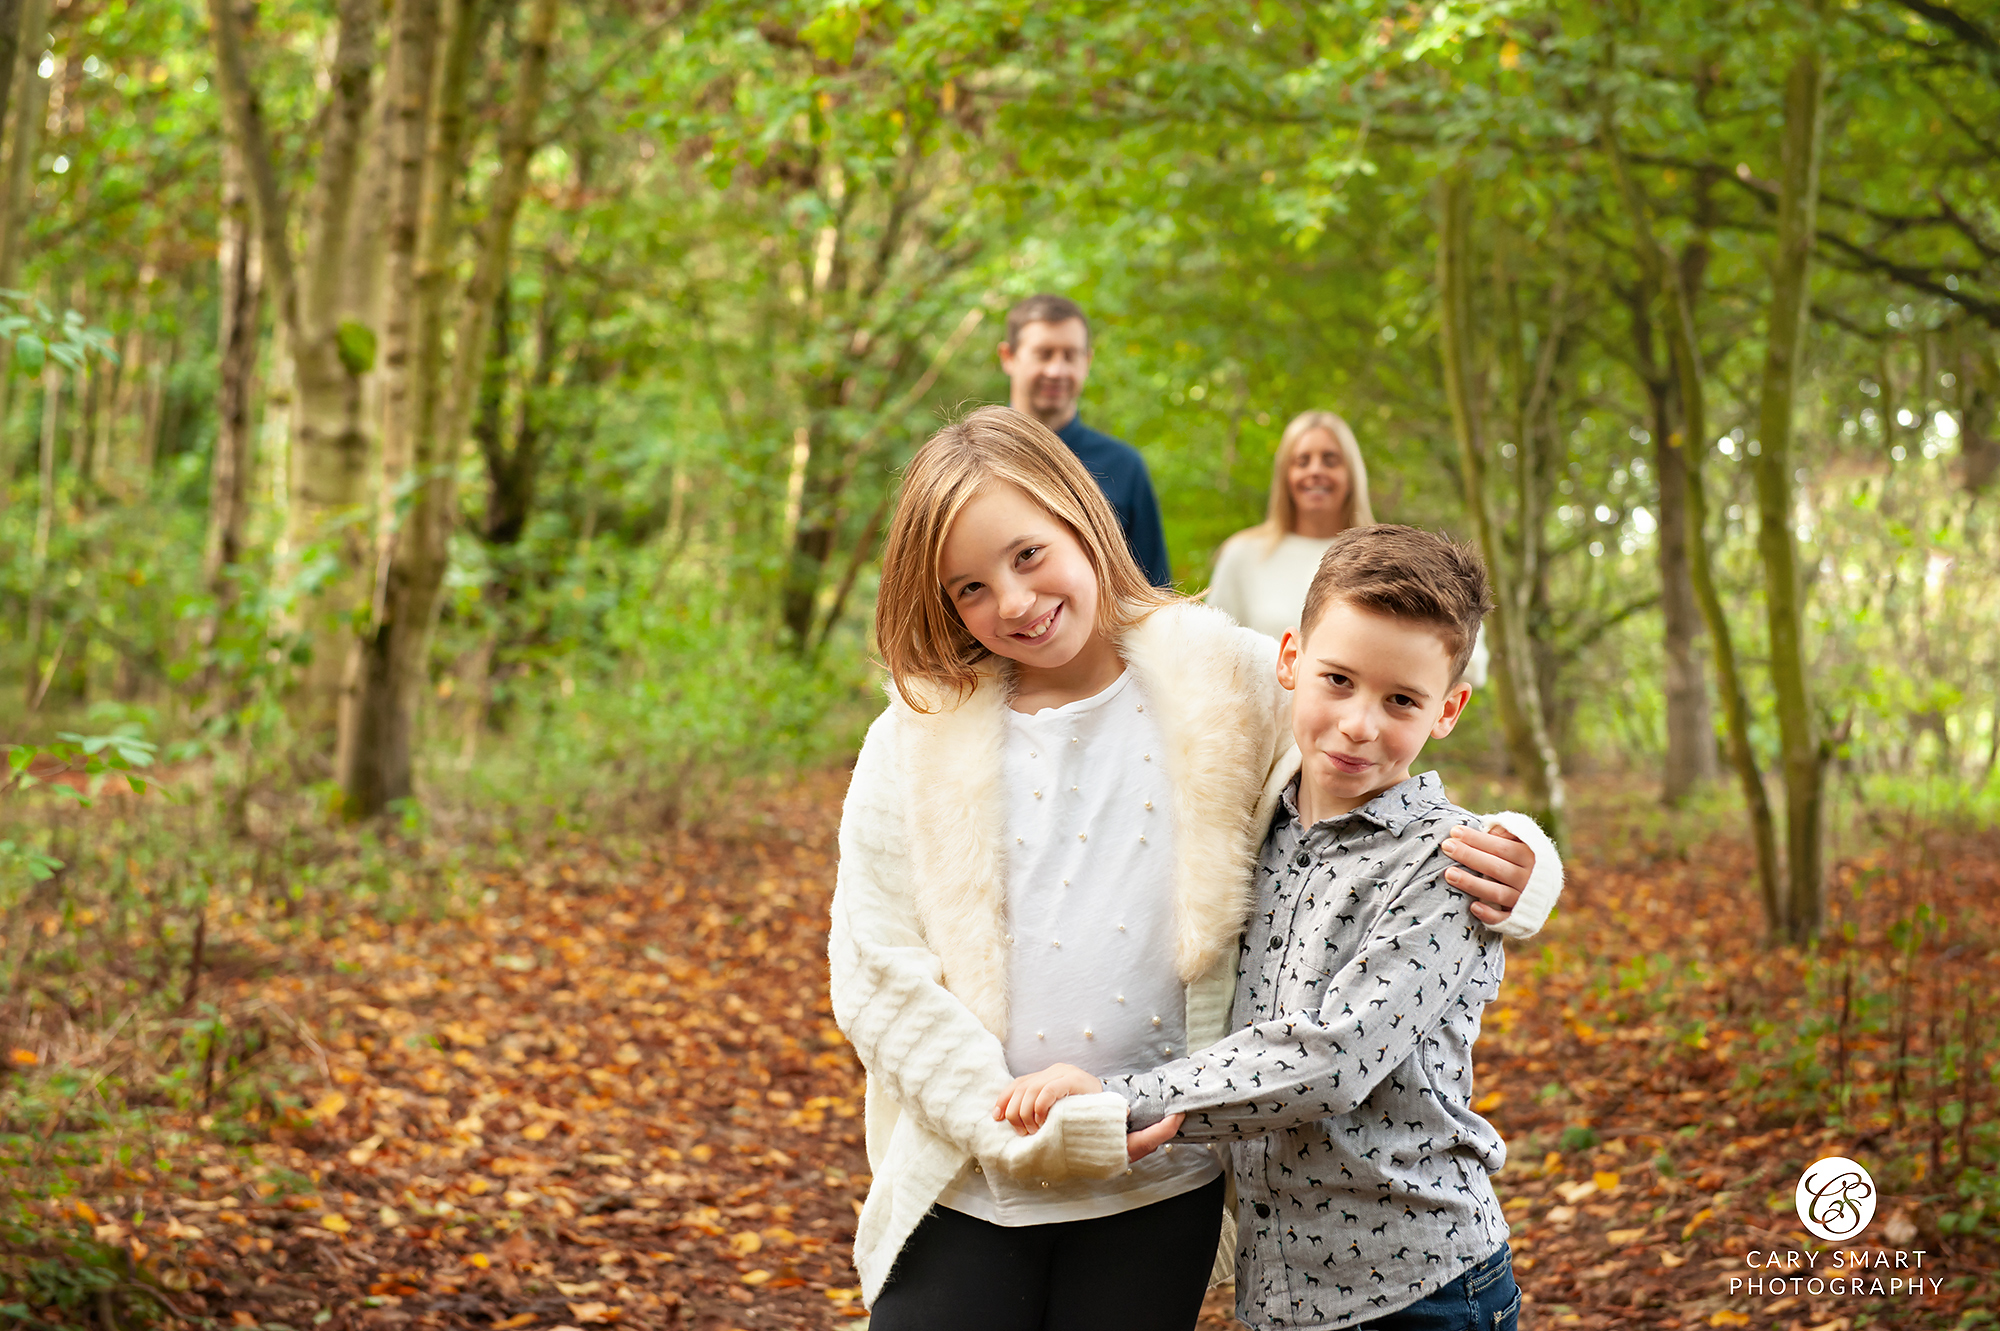 Family photo shoot in the woods Caldicot